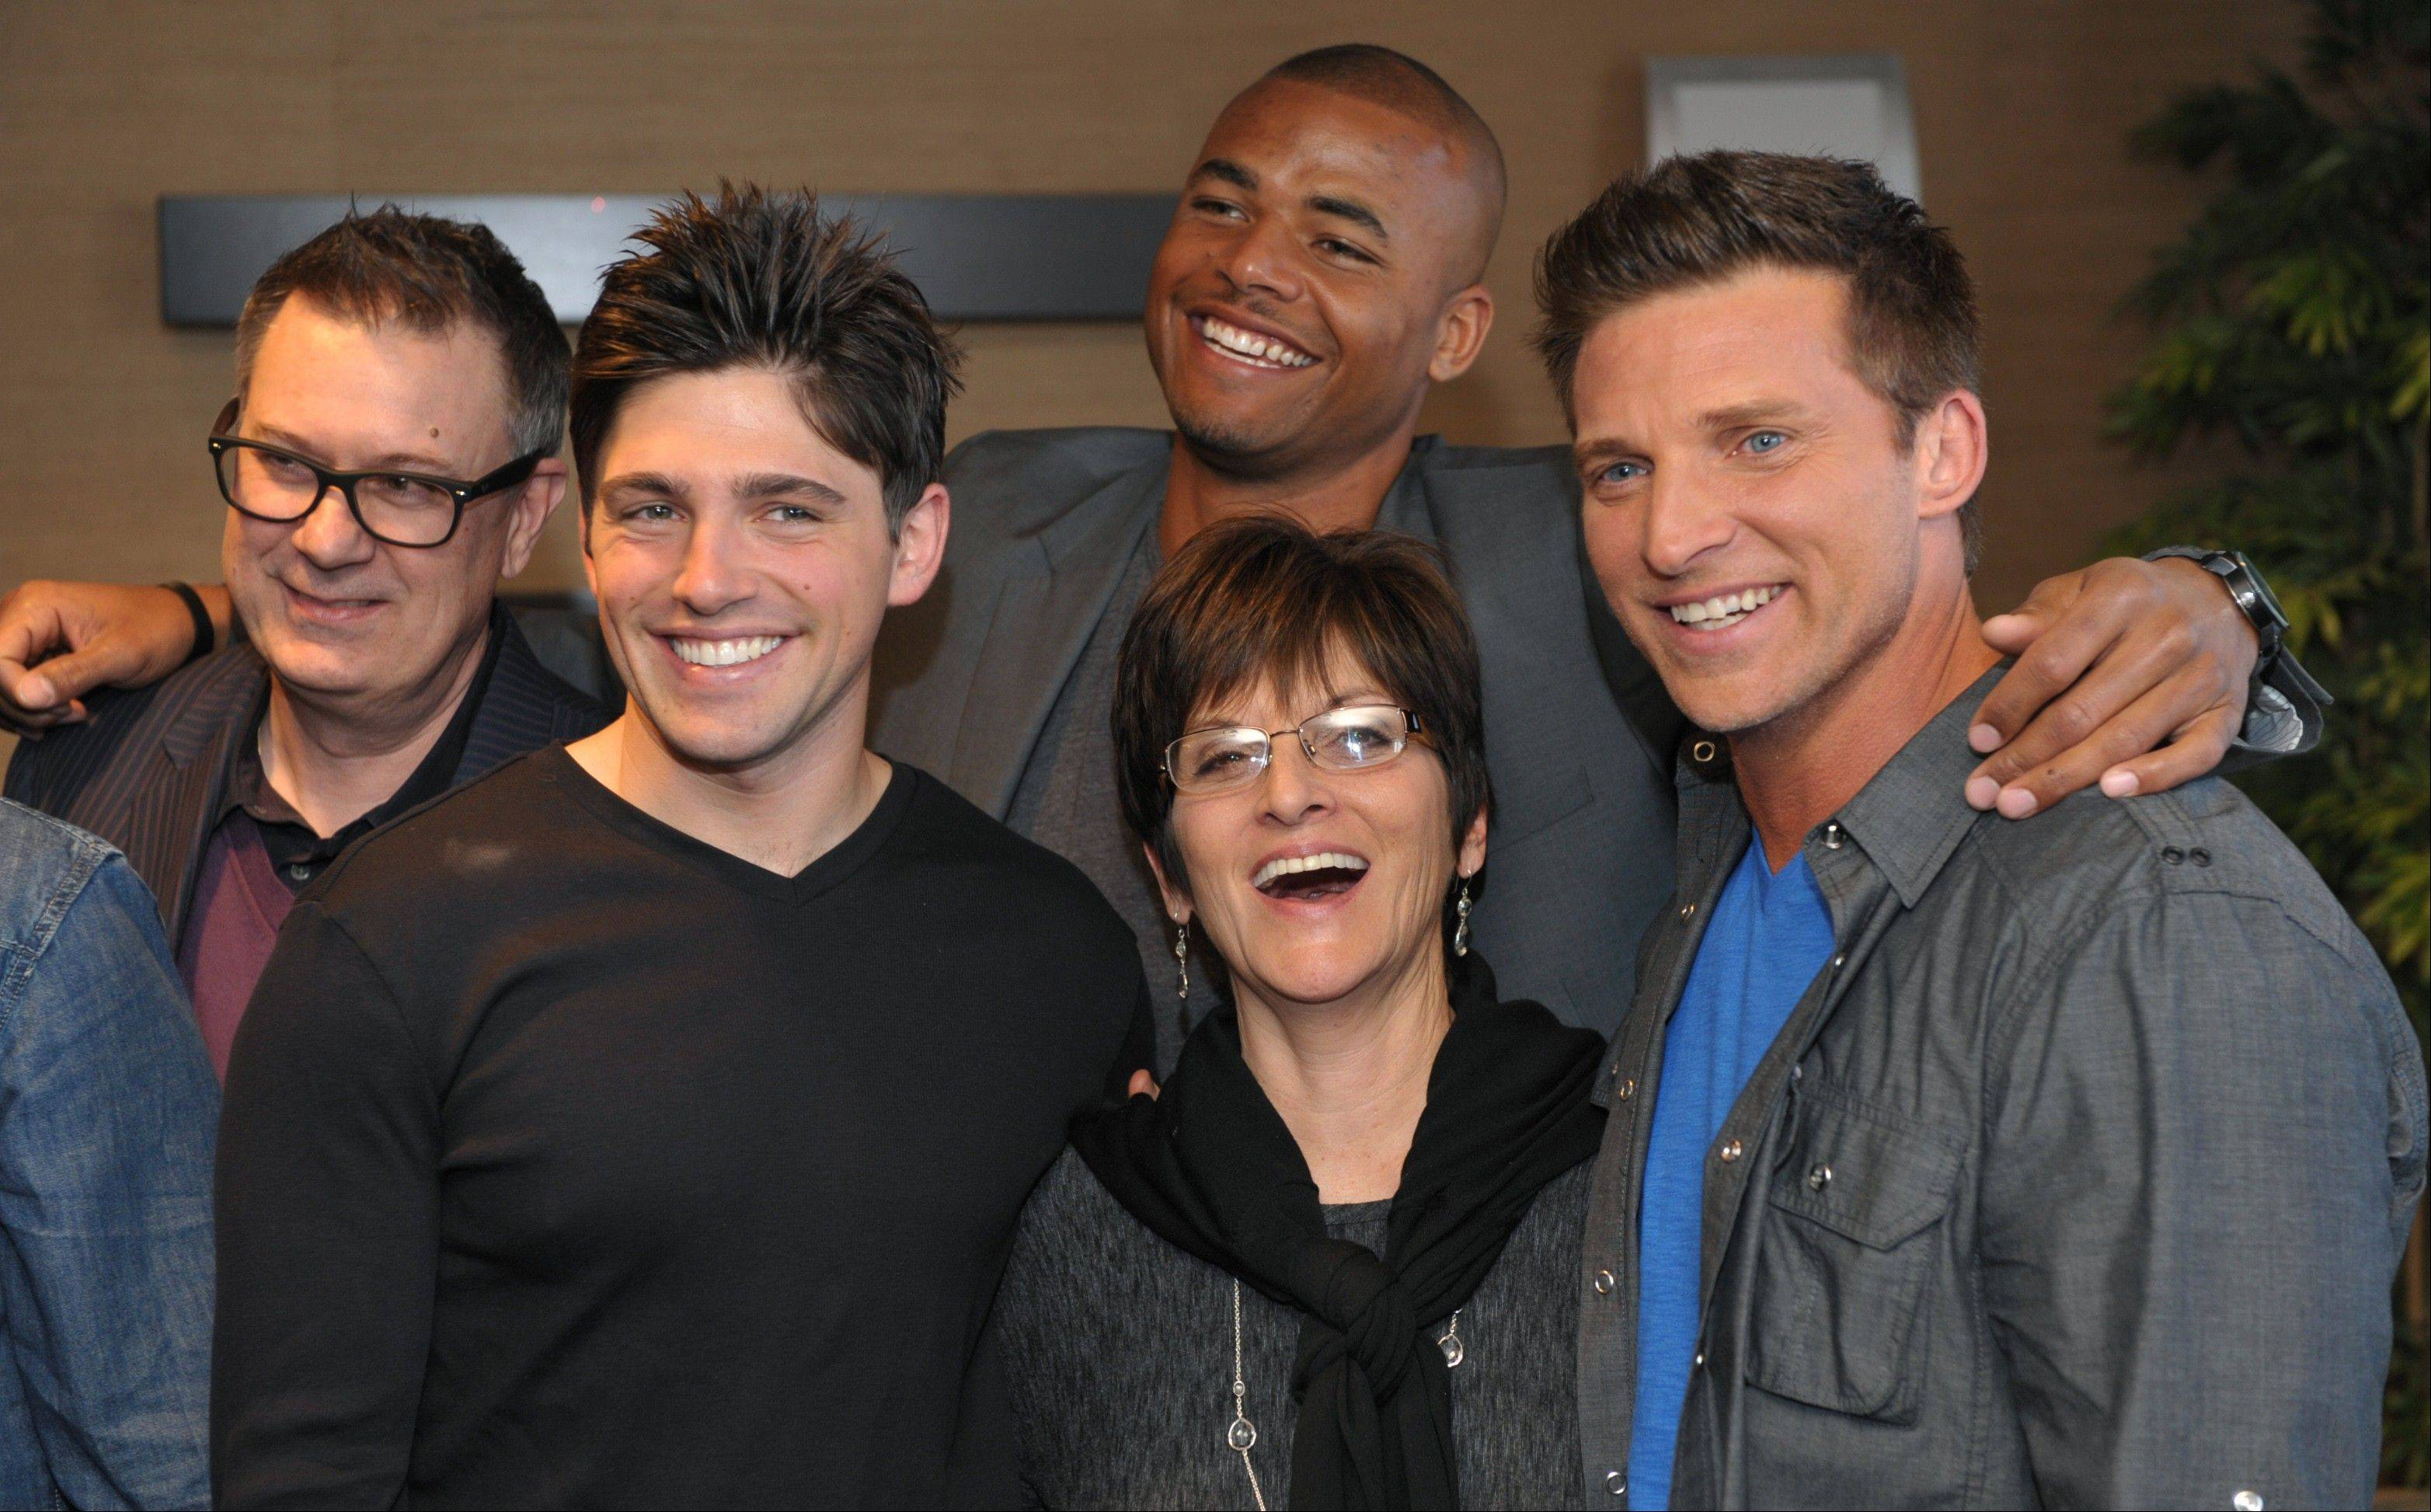 "Jill Farren Phelps, second from right, executive producer of ""The Young and the Restless,"" poses with, from left, the show's head writer Josh Griffith and cast members Robert Adamson, Redaric Williams and Steve Burton at the Hot New Faces of ""The Young and the Restless"" press junket at CBS Television City on Wednesday, Feb. 27, 2013 in Los Angeles. The CBS show, daytime's top-rated soap since December 1988, hits the big 4-0 on Tuesday, March 26, 2013."